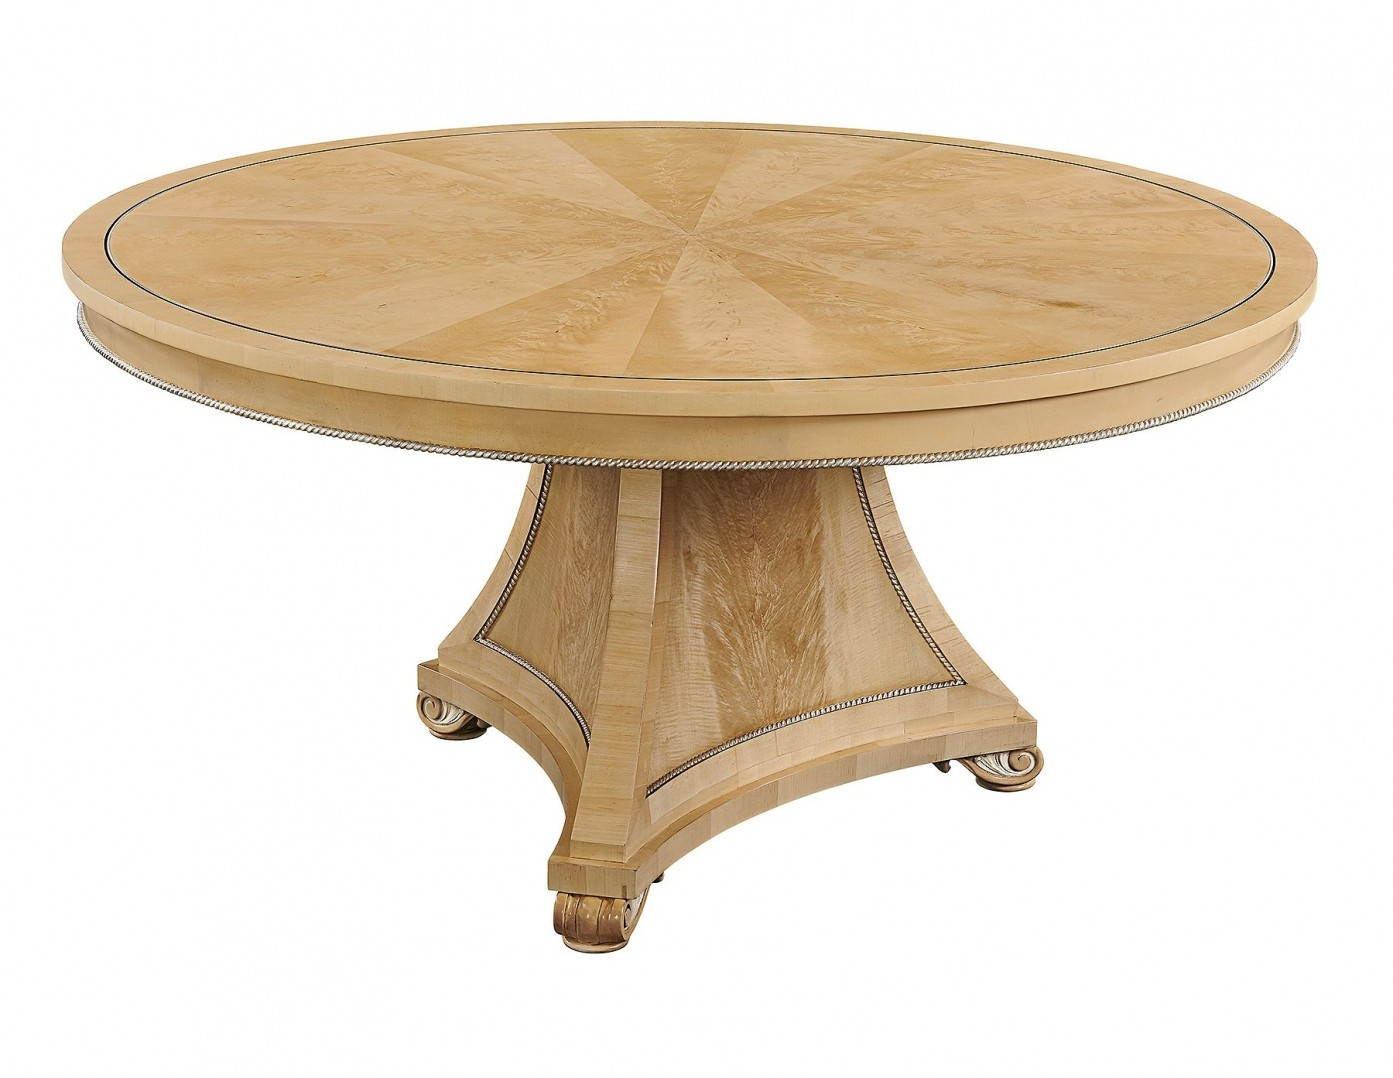 Robert Adam style crotch sycamore round dining table - 5ft